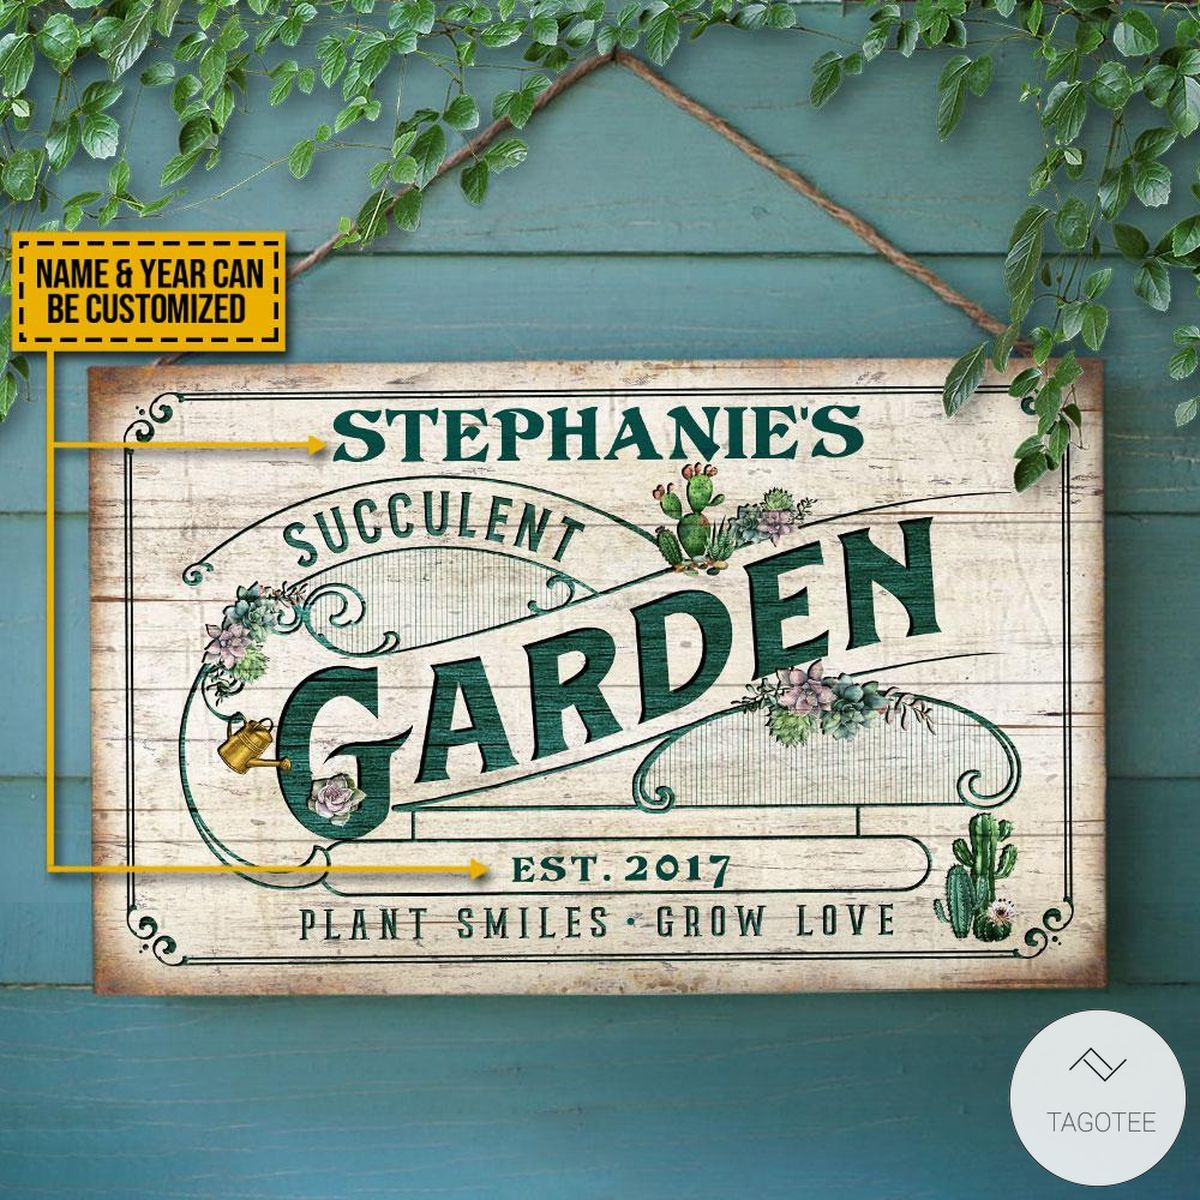 Personalized Succulent Garden Plants - Smiles - Grow Love Rectangle Wood Sign z